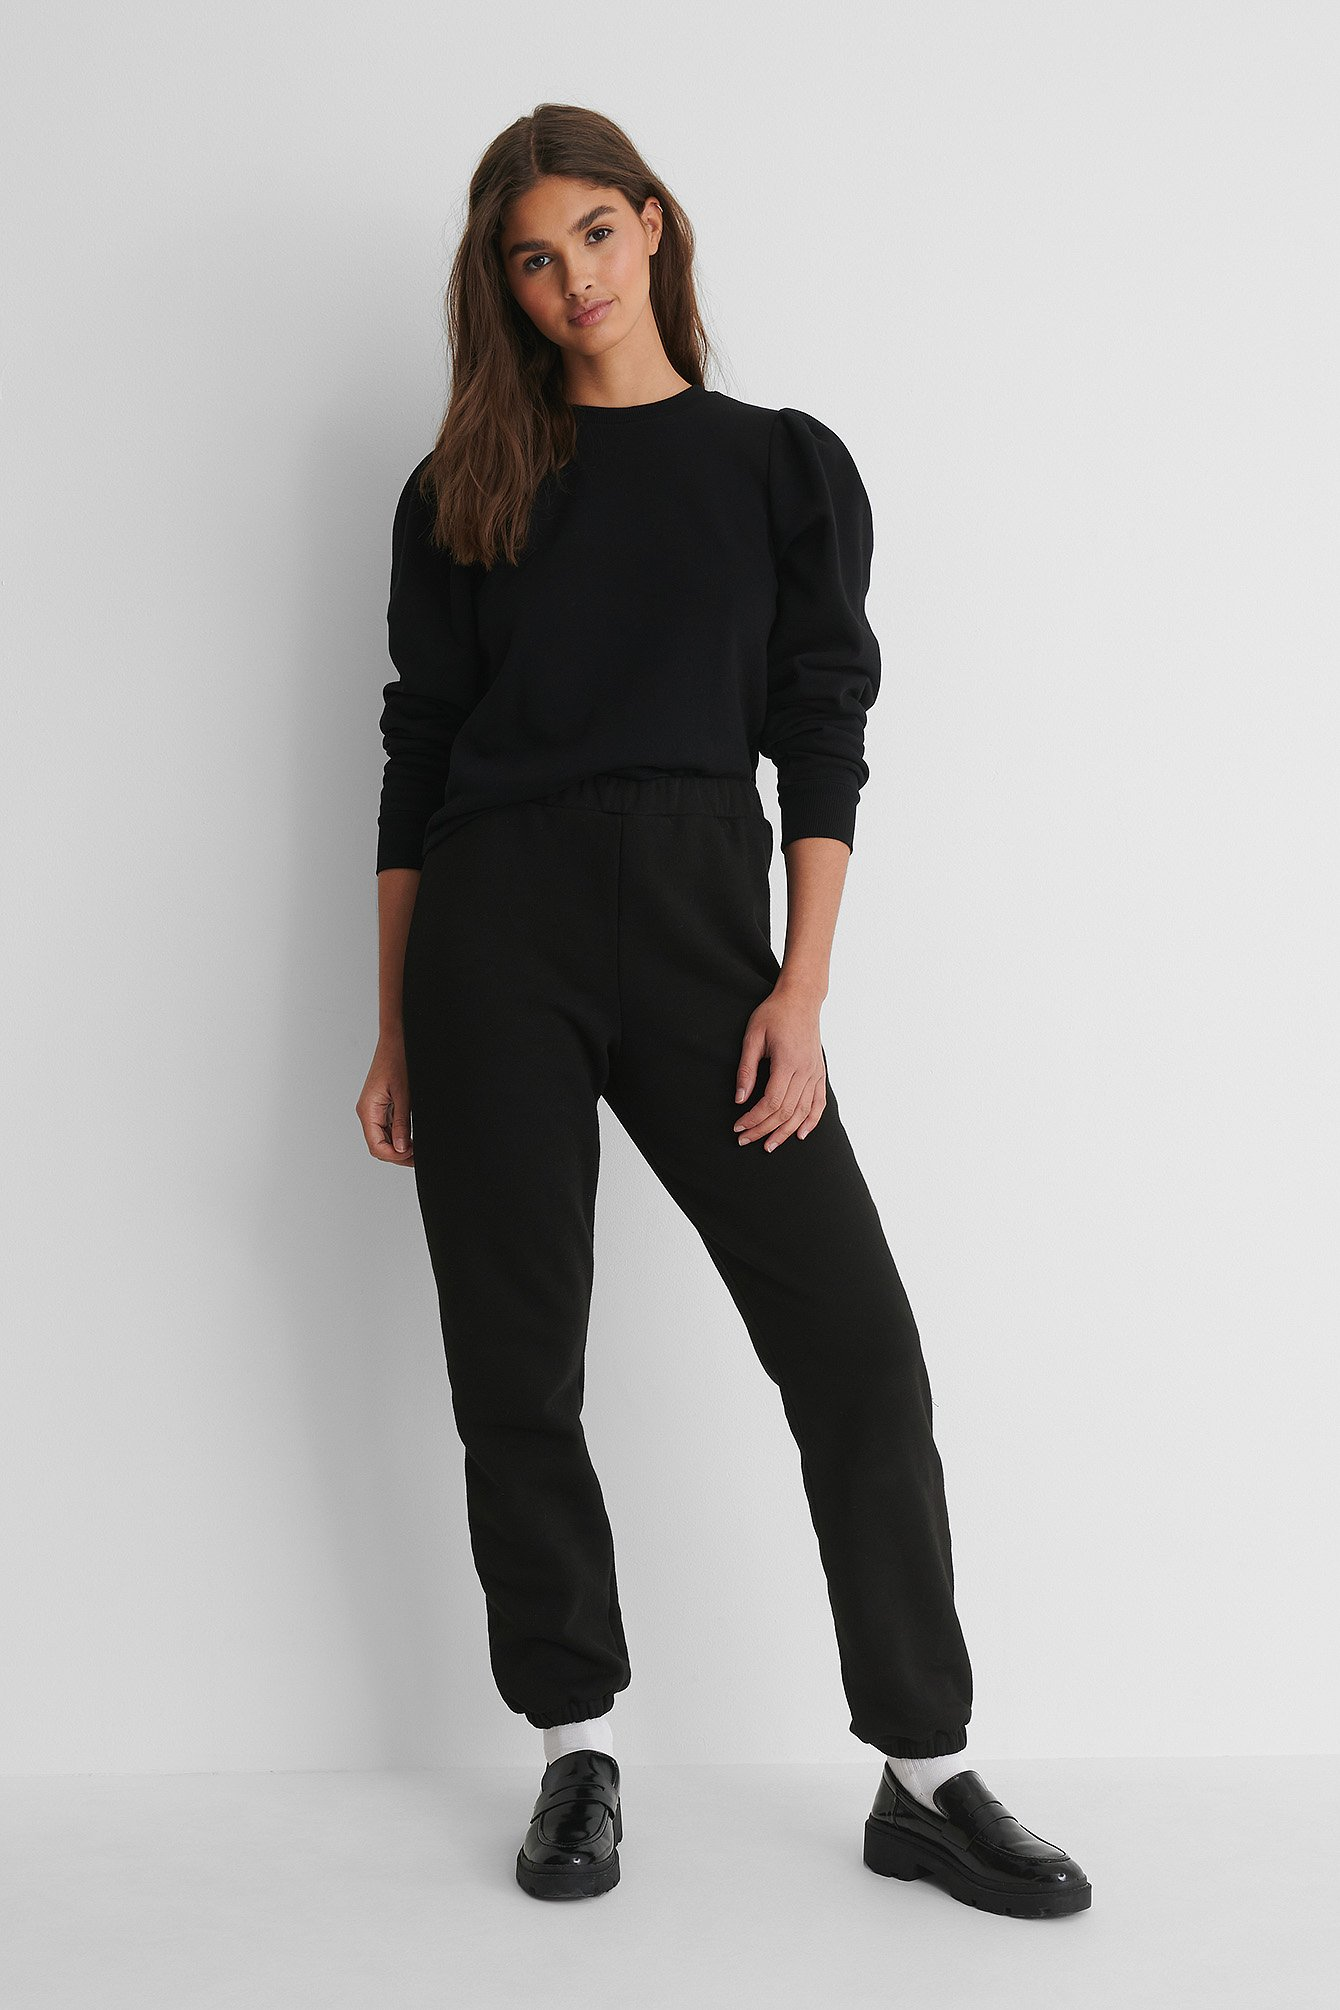 Puff Sleeved Sweatshirt Outfit.